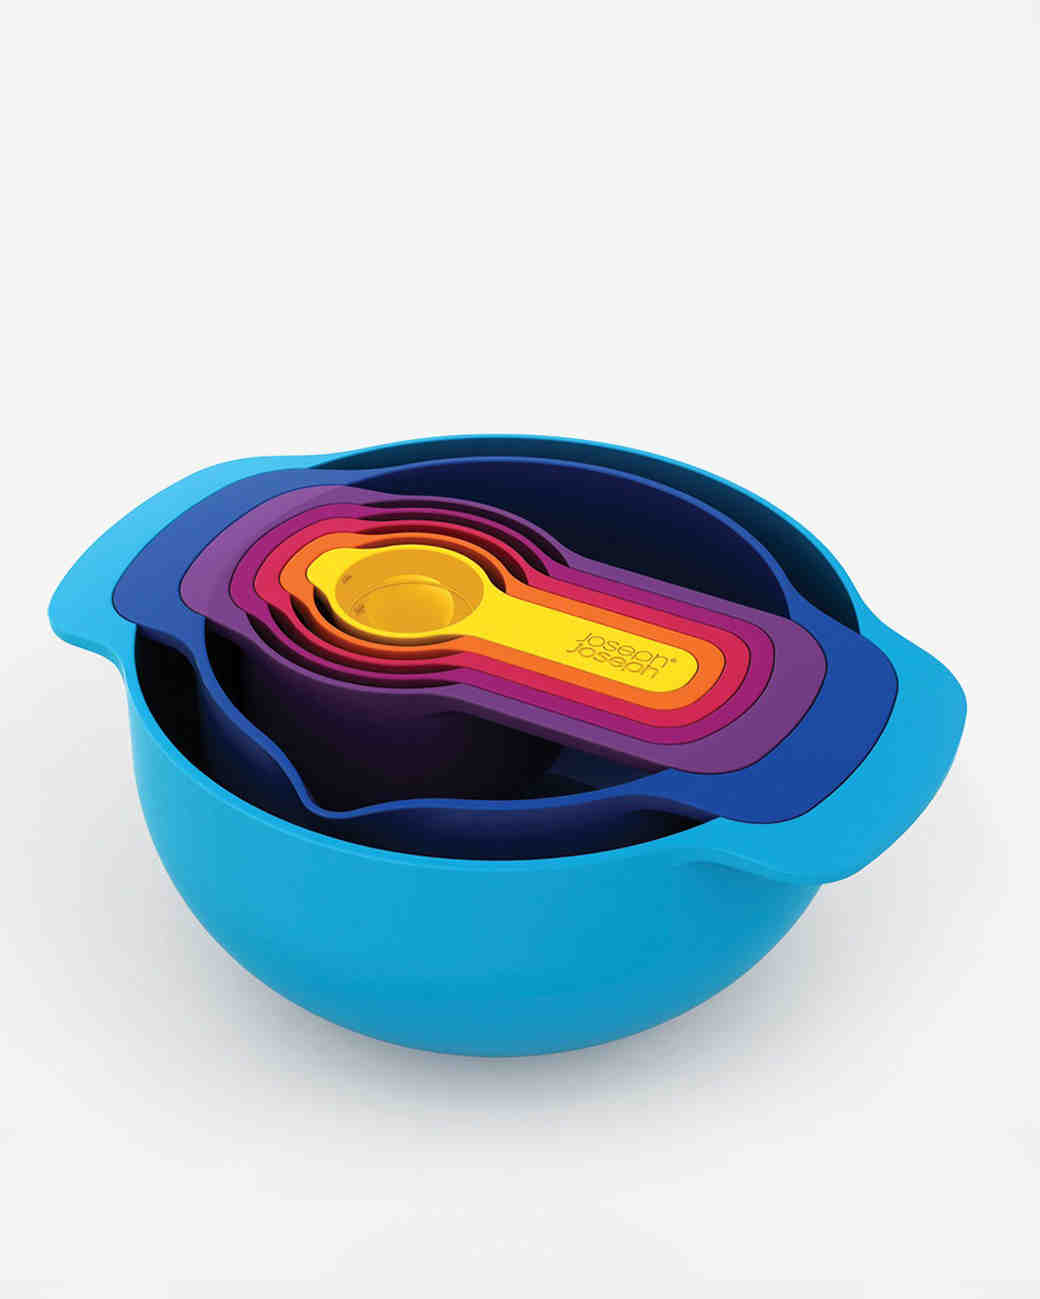 jjoseph nest bowl set